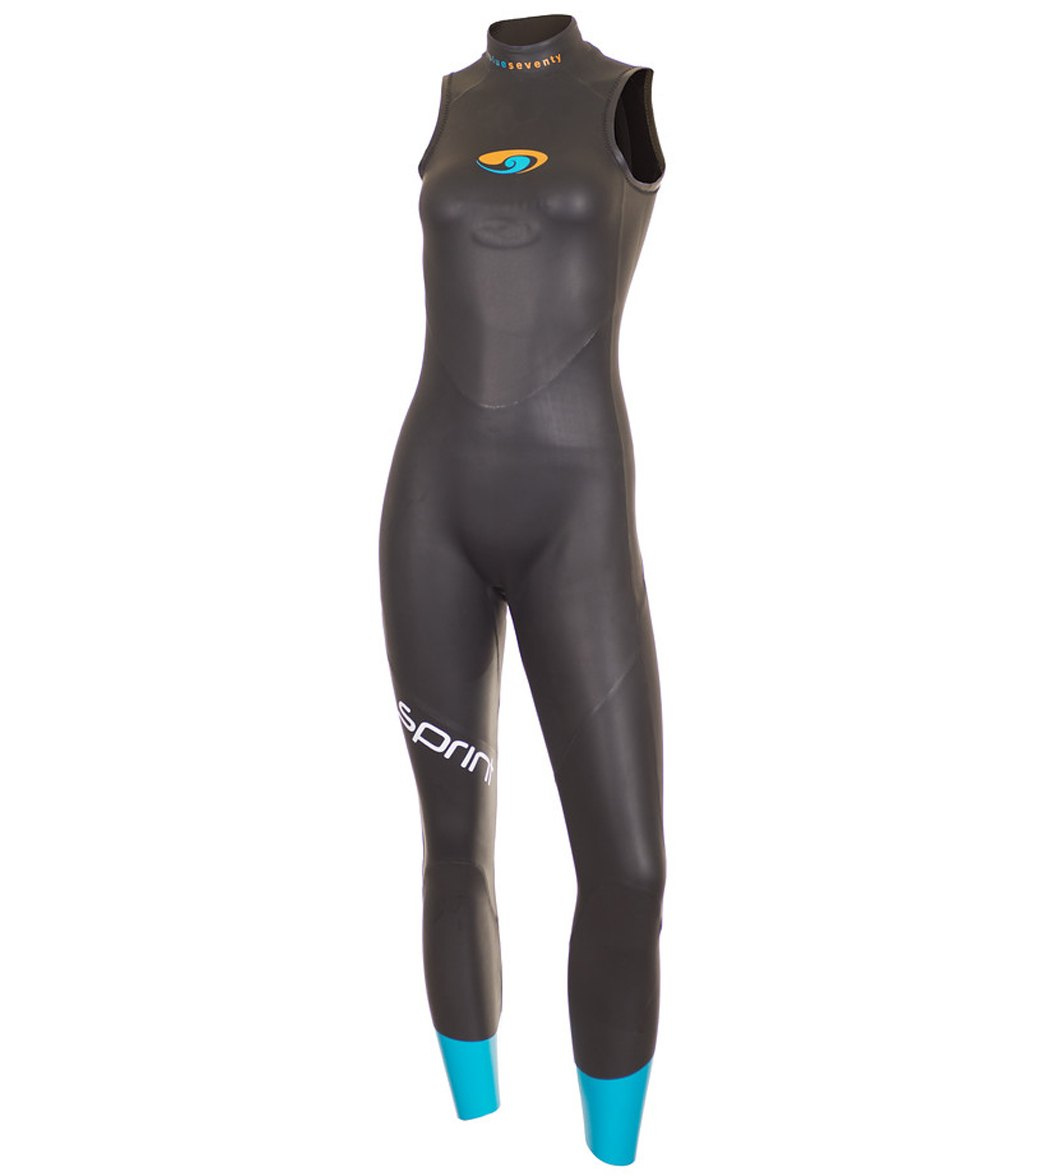 457095557f Blueseventy Women s Sprint Sleeveless Triathlon Wetsuit at SwimOutlet.com -  Free Shipping